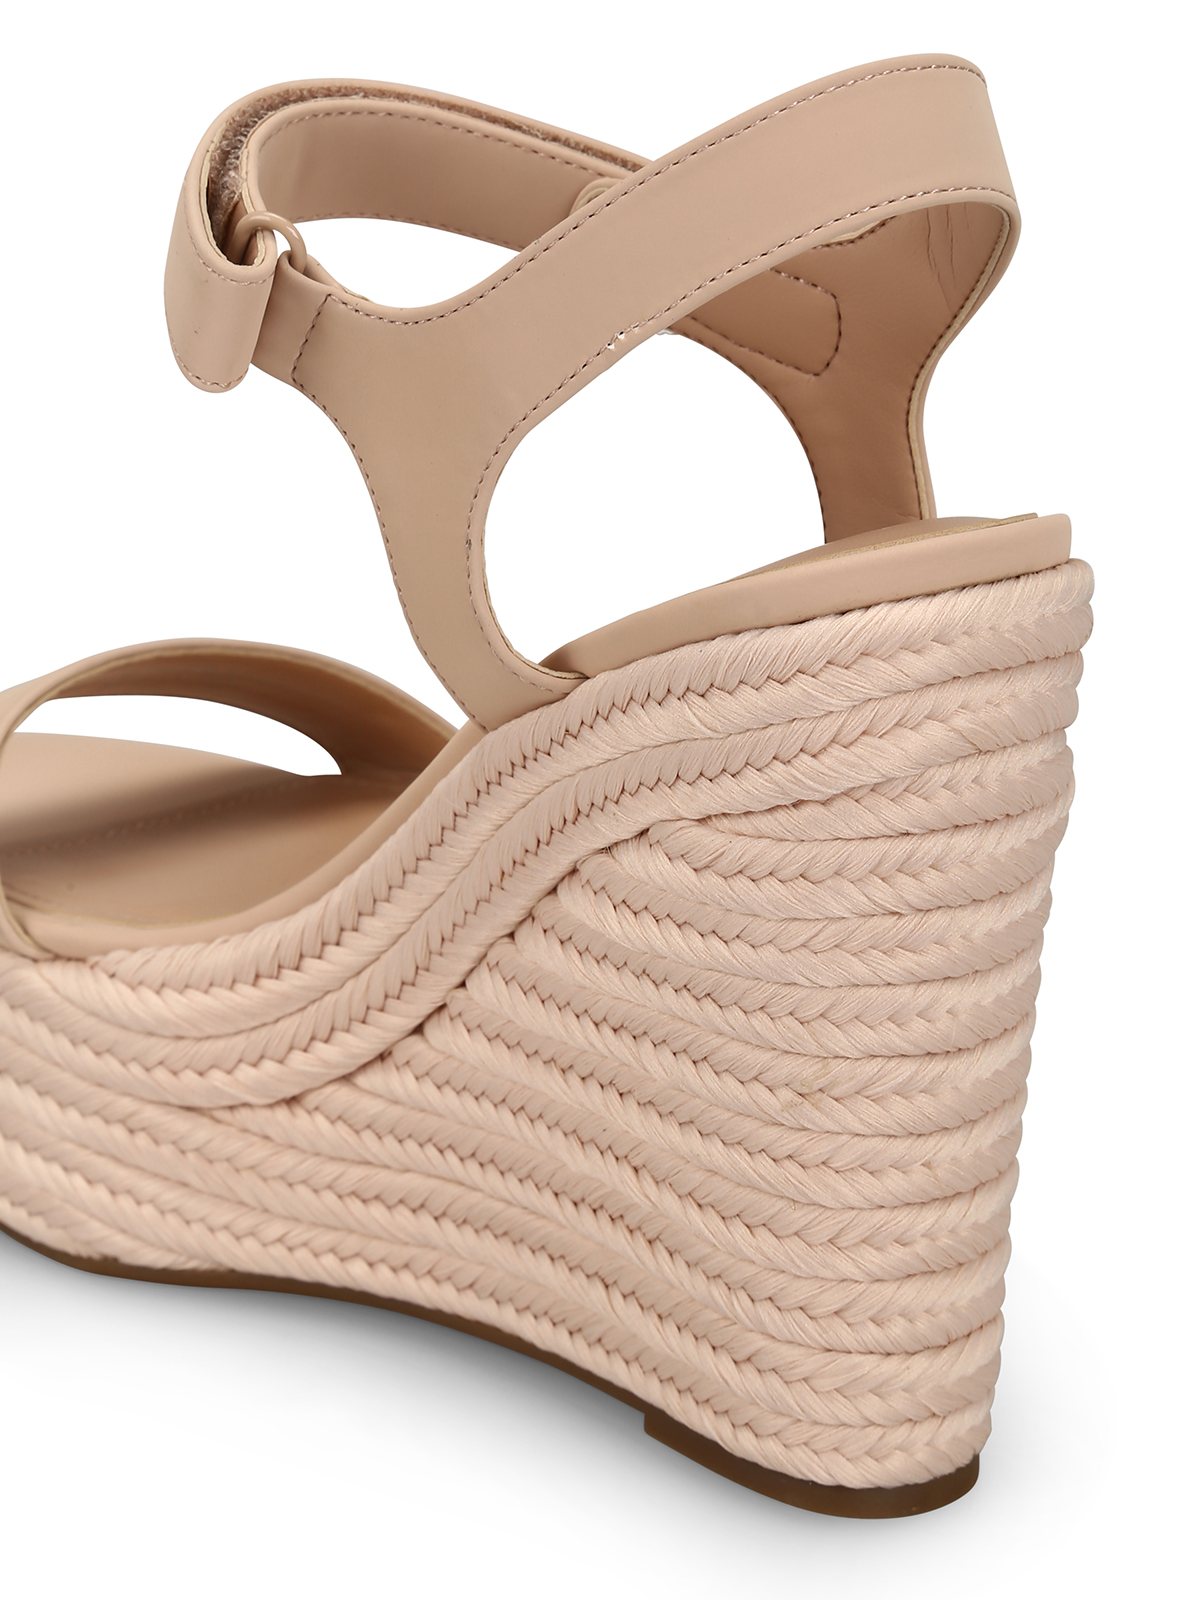 5c71401de0 Kendall + Kylie - Grand pink leather wedge sandals - sandals ...